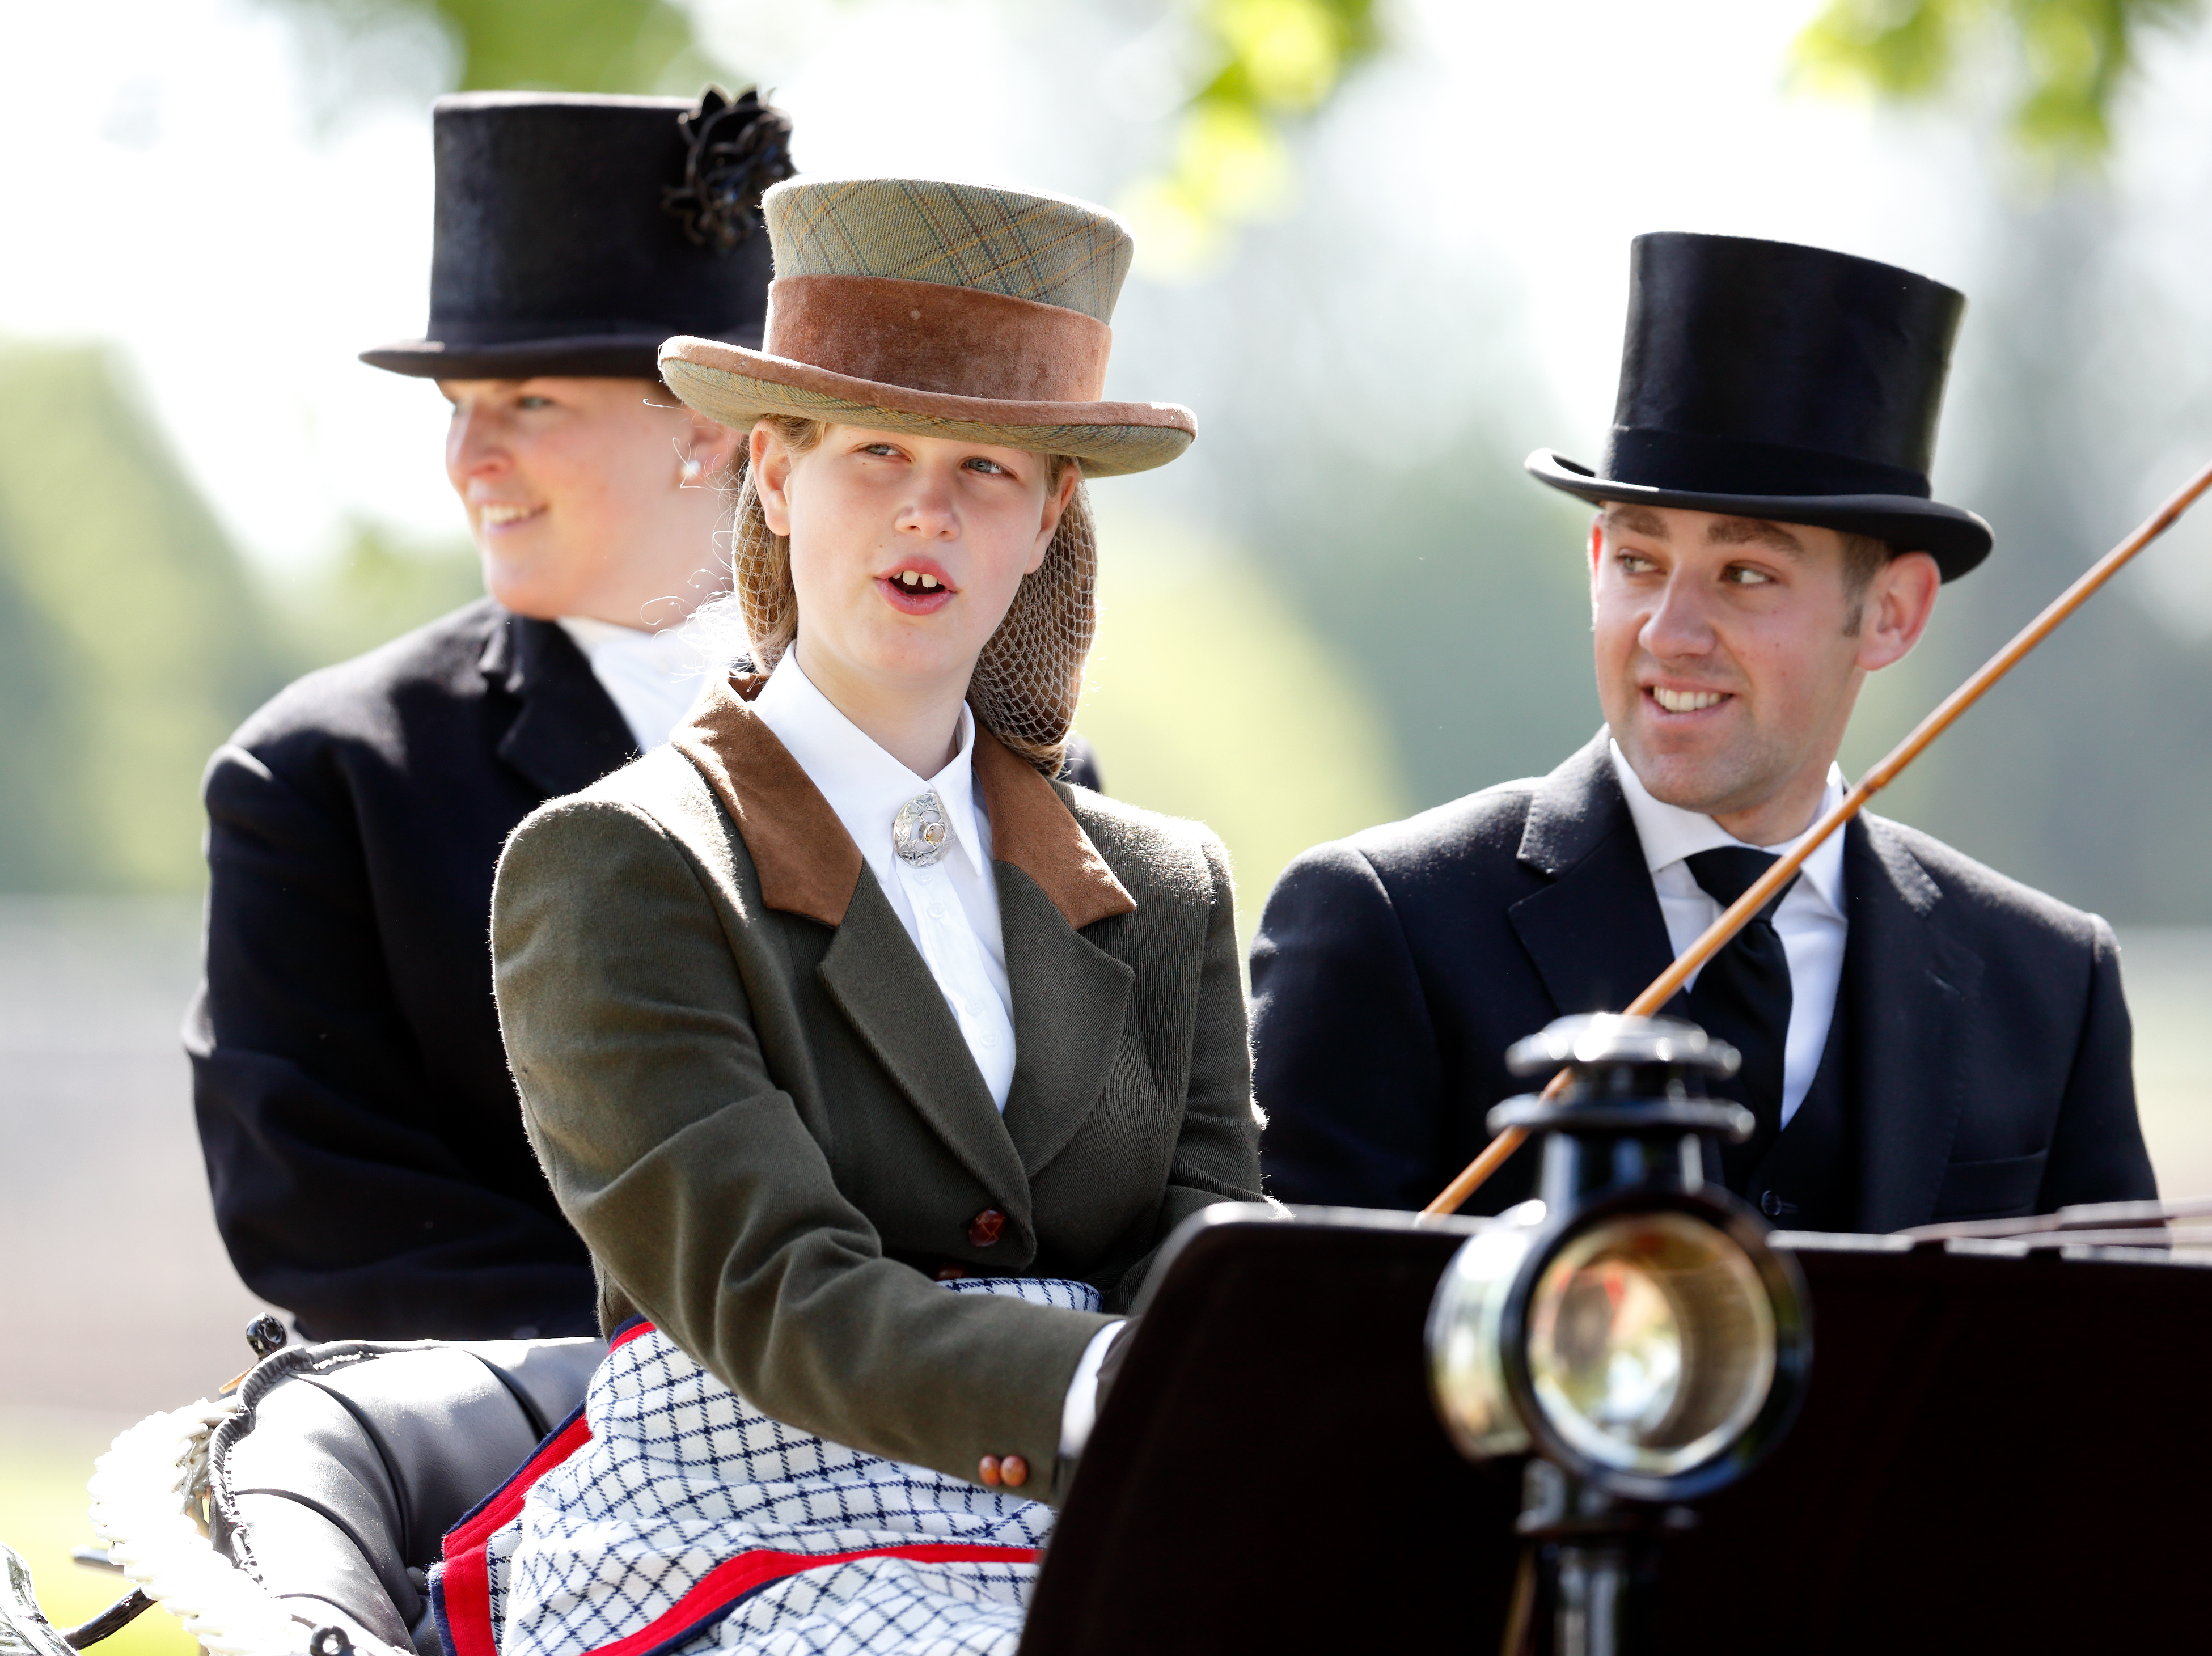 Lady Louise Windsor seen carriage driving as she takes part in The Champagne Laurent-Perrier Meet of the British Driving Society on day 5 of the Royal Windsor Horse Show in Home Park on May 14, 2017 in Windsor, England.